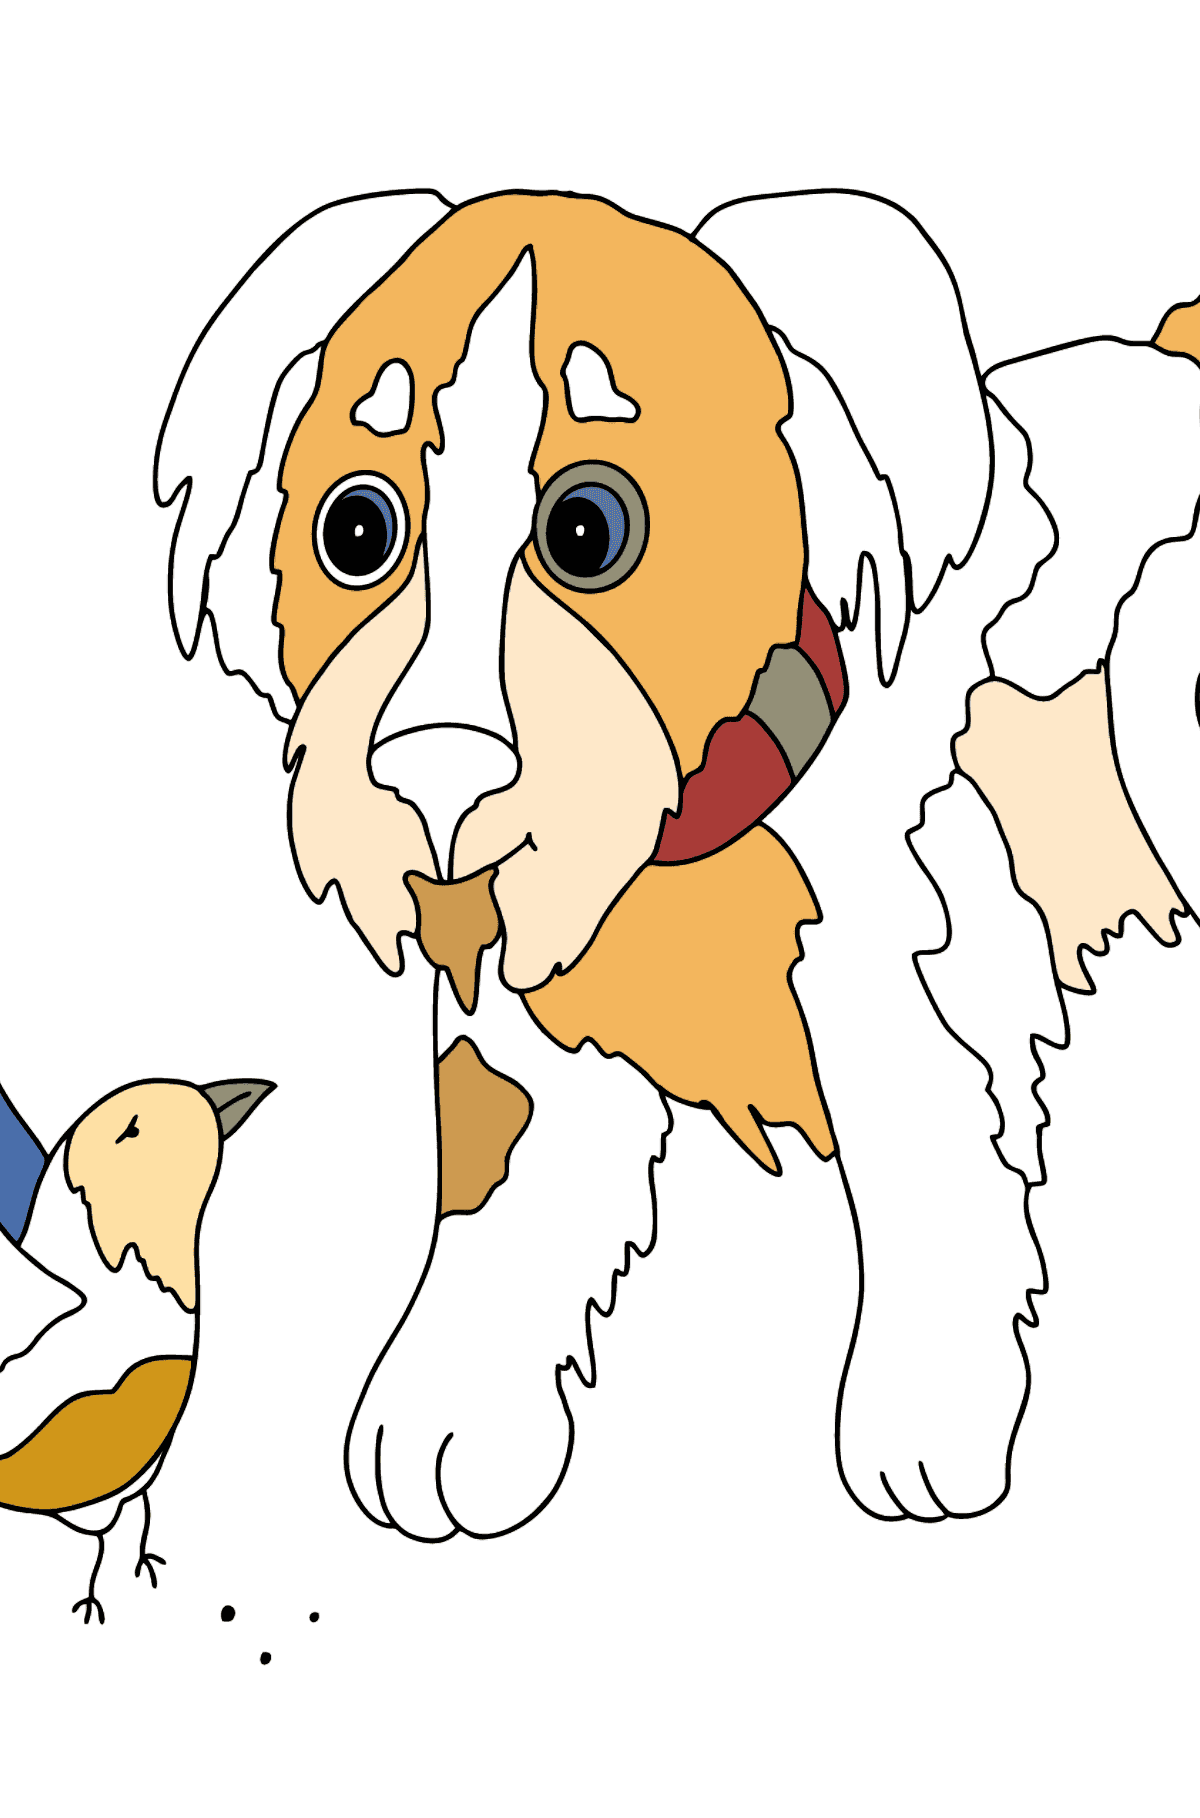 Coloring Page - A Dog is Playing with a Bird - Coloring Pages for Kids